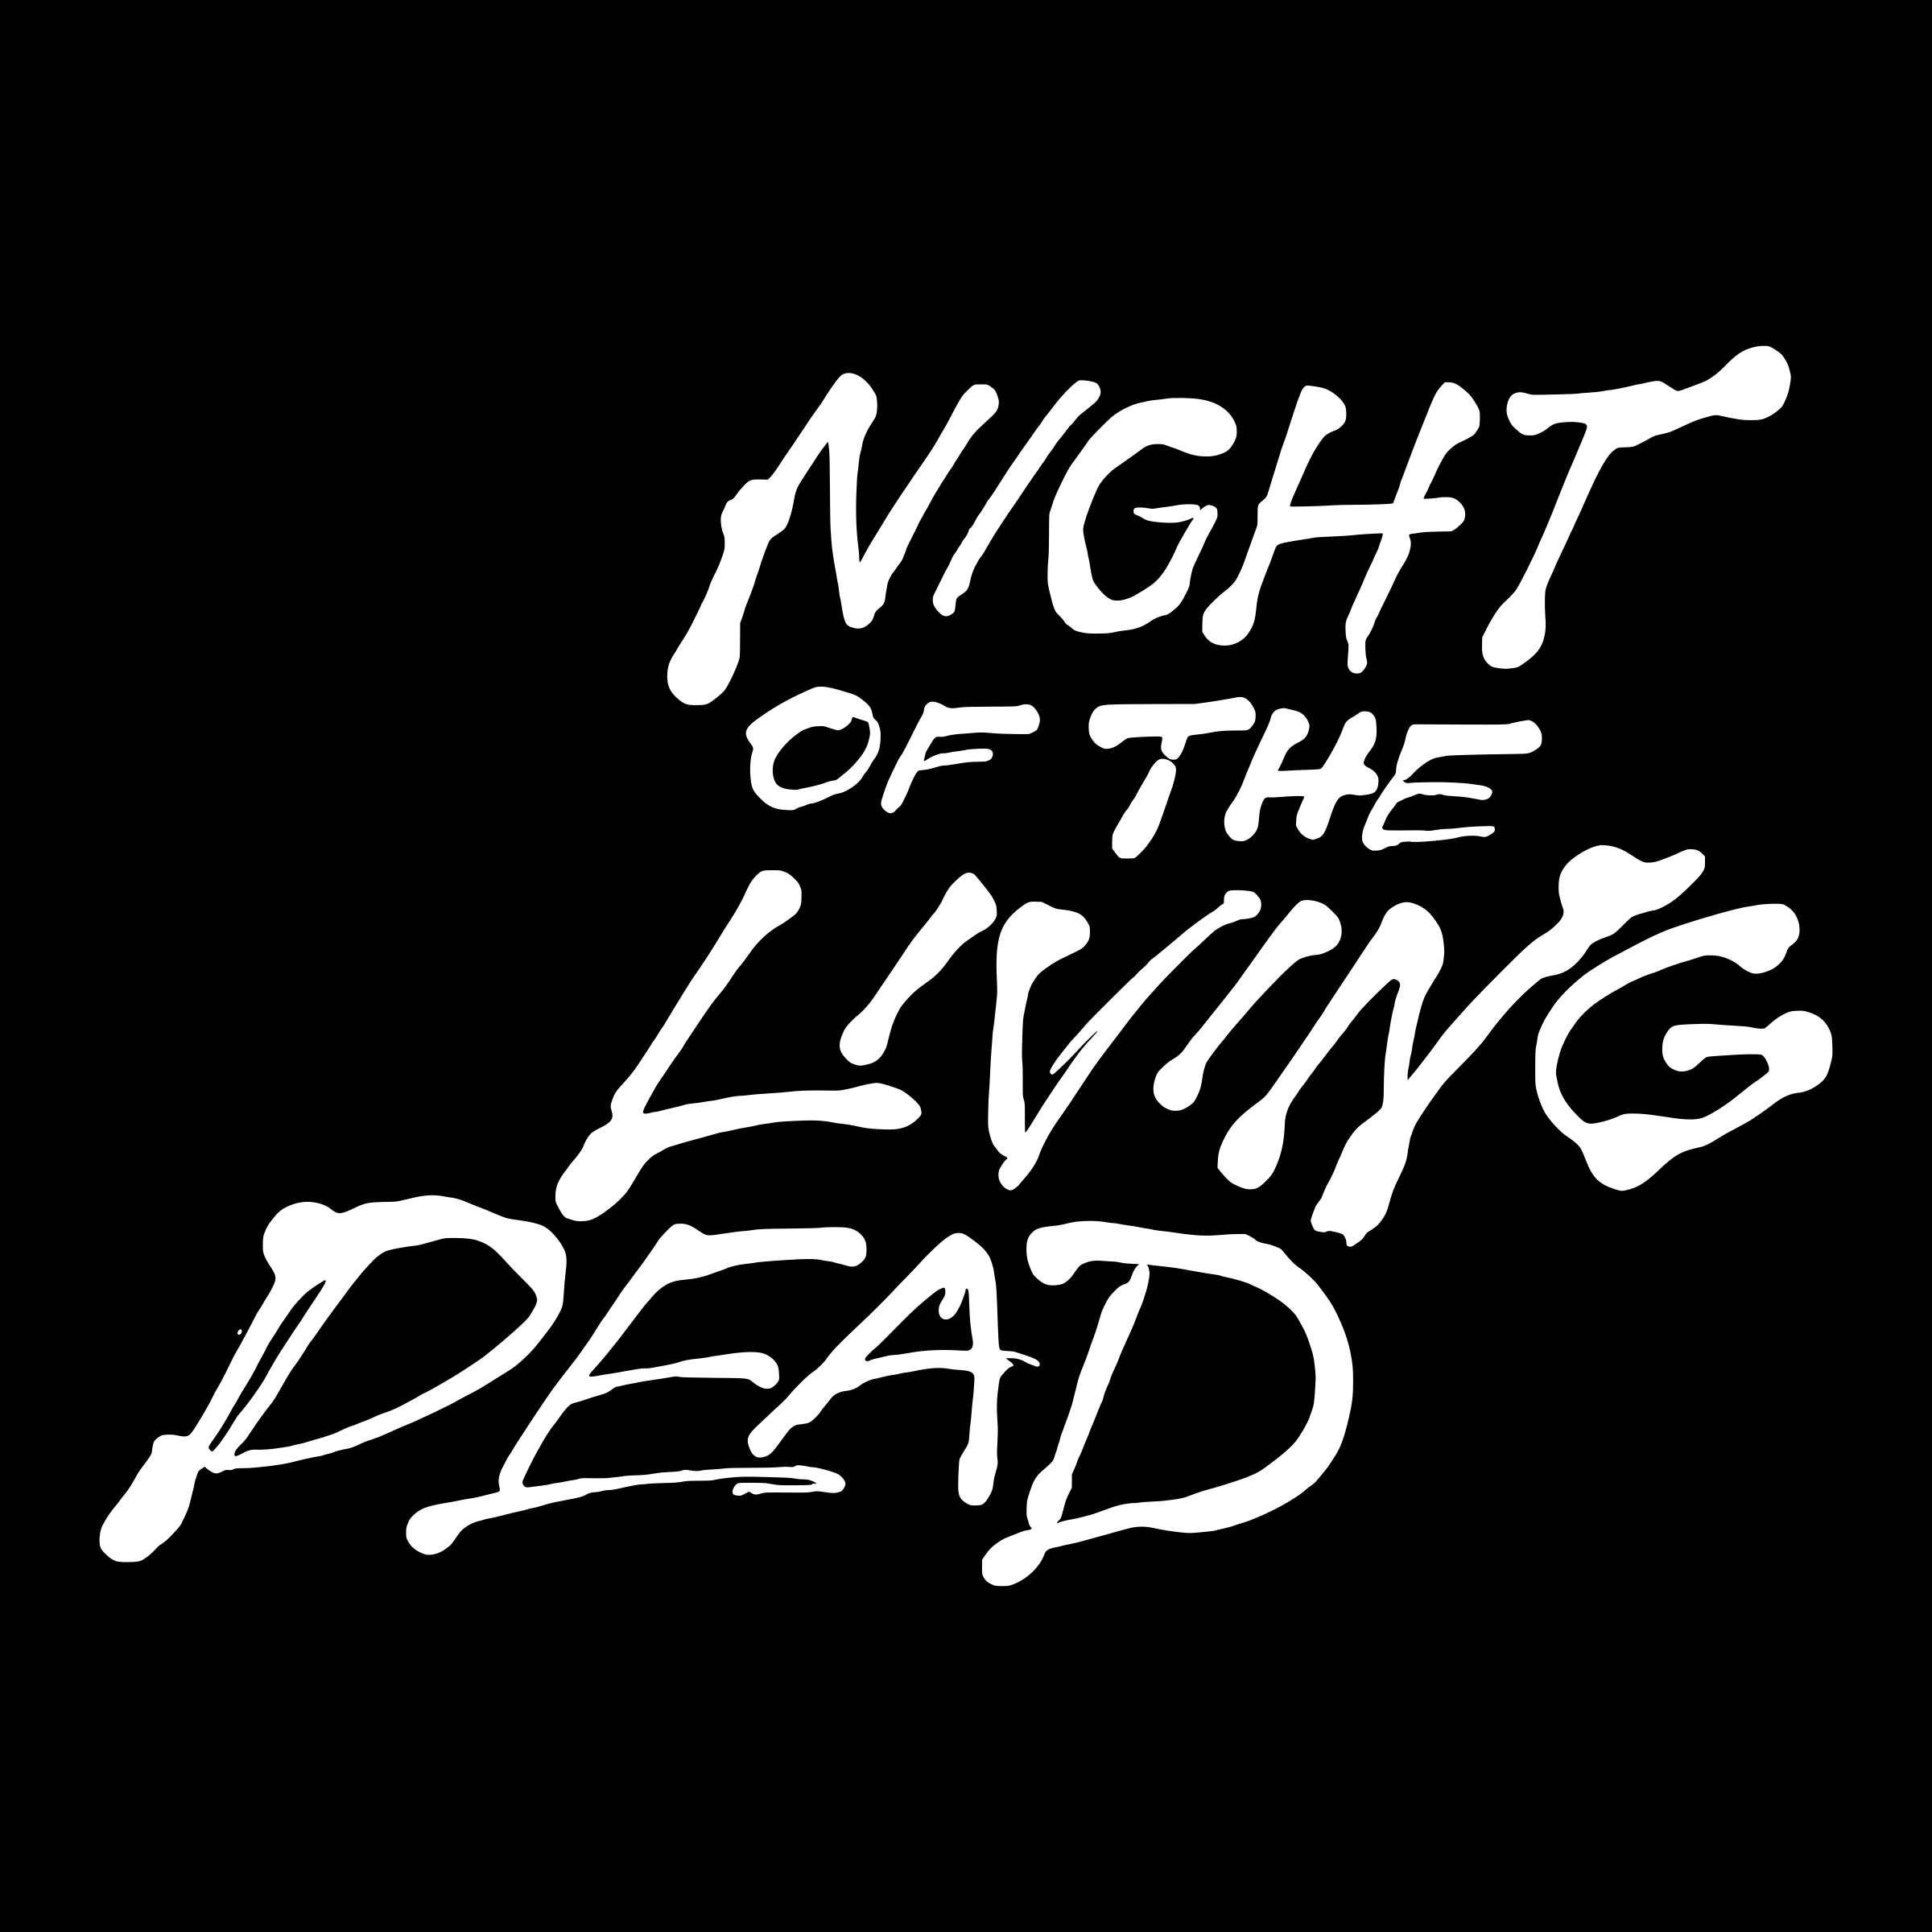 Night of the living dead title screen detail by Lazur URH